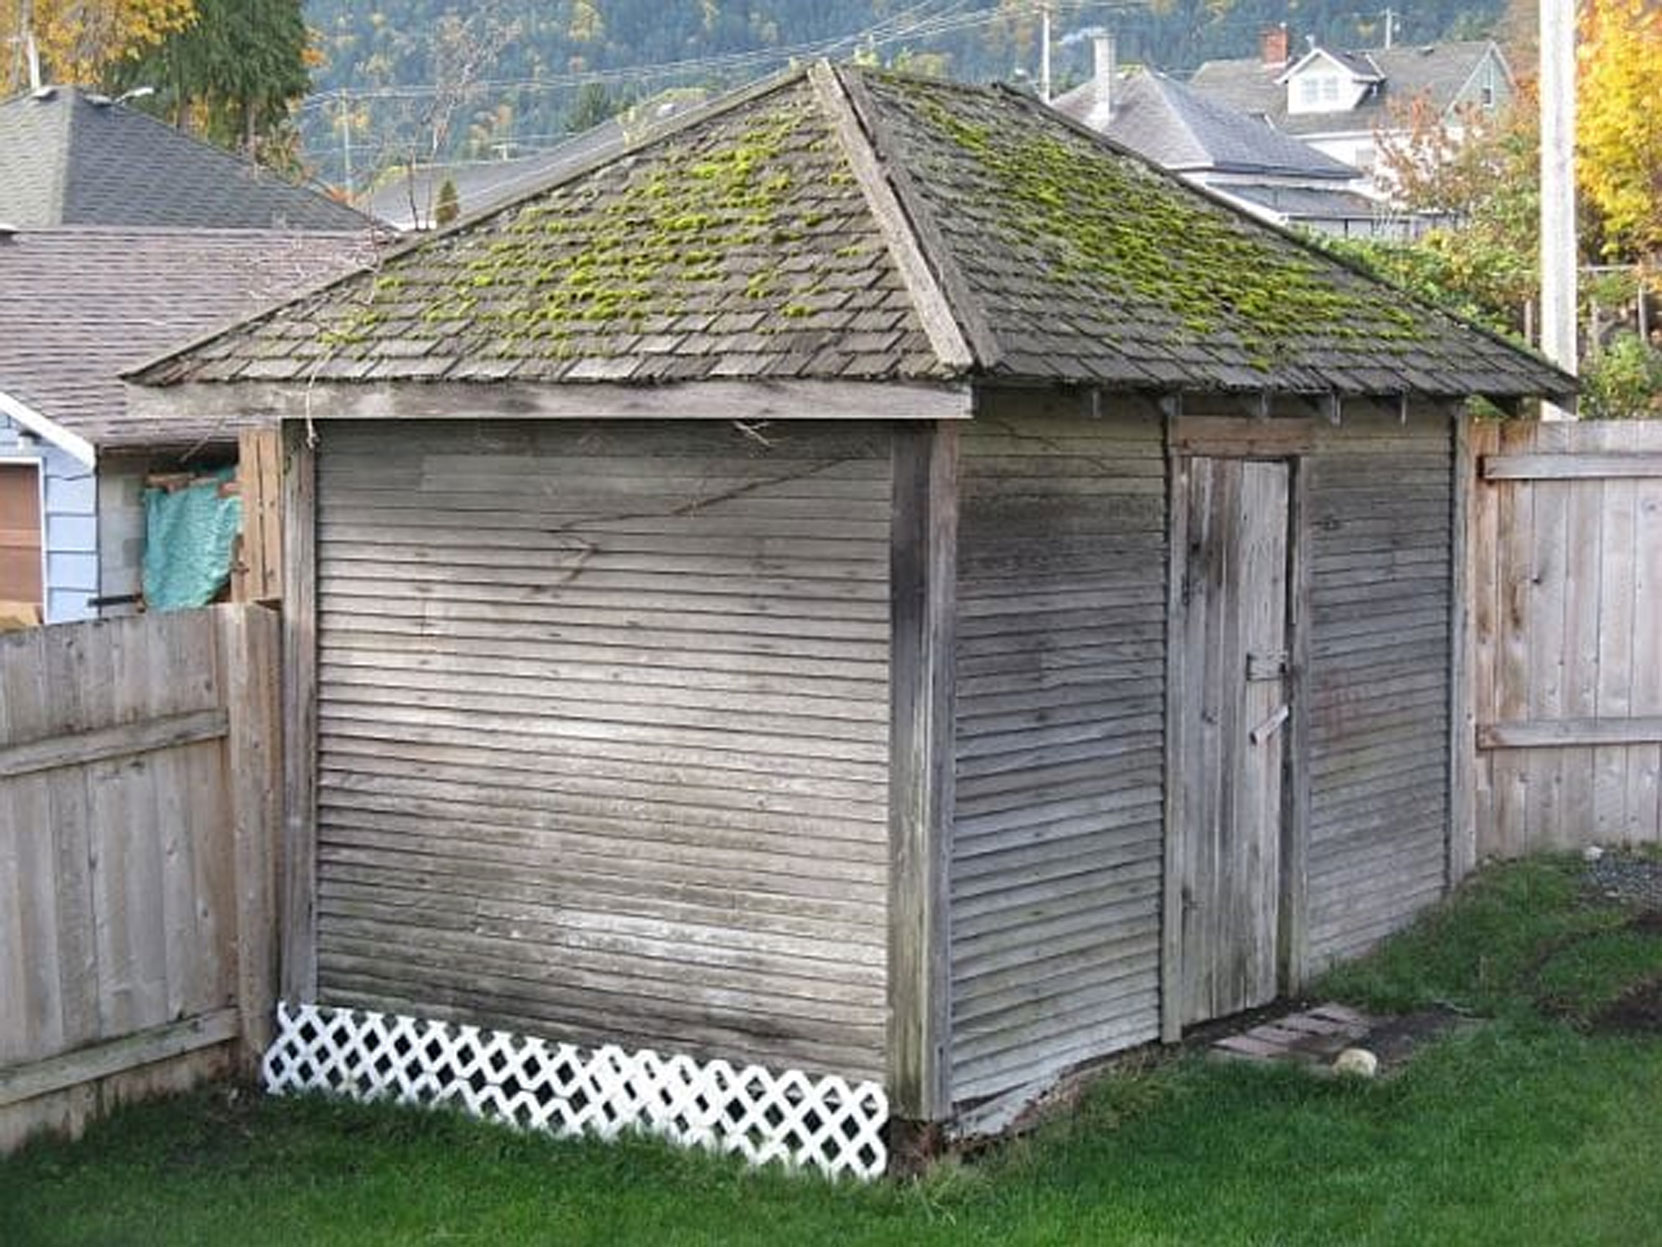 This original coal shed at 230 3rd Avenue dates circa 1905. It is one the last exant coal sheds in Ladysmith. This photograph was taken in 2012.(photo: Micheal Fine)